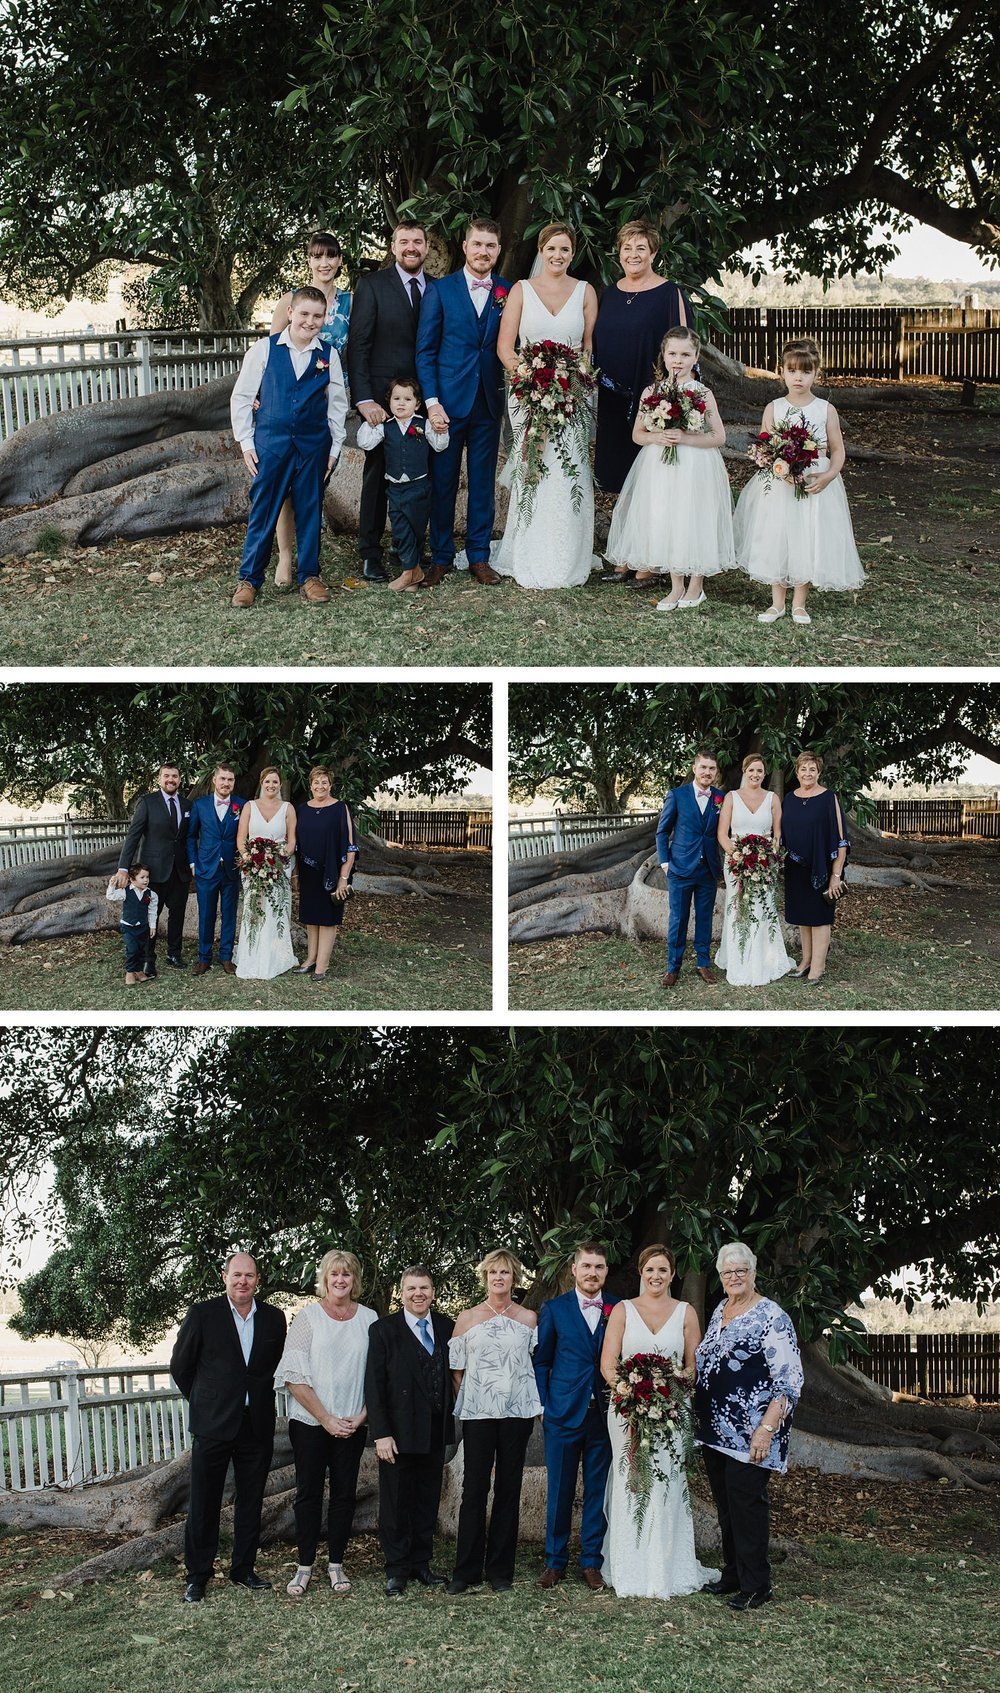 076Hunter Valley Wedding Photographers Bryce Noone Photography at Tocal Homestead Wedding Venue.jpg